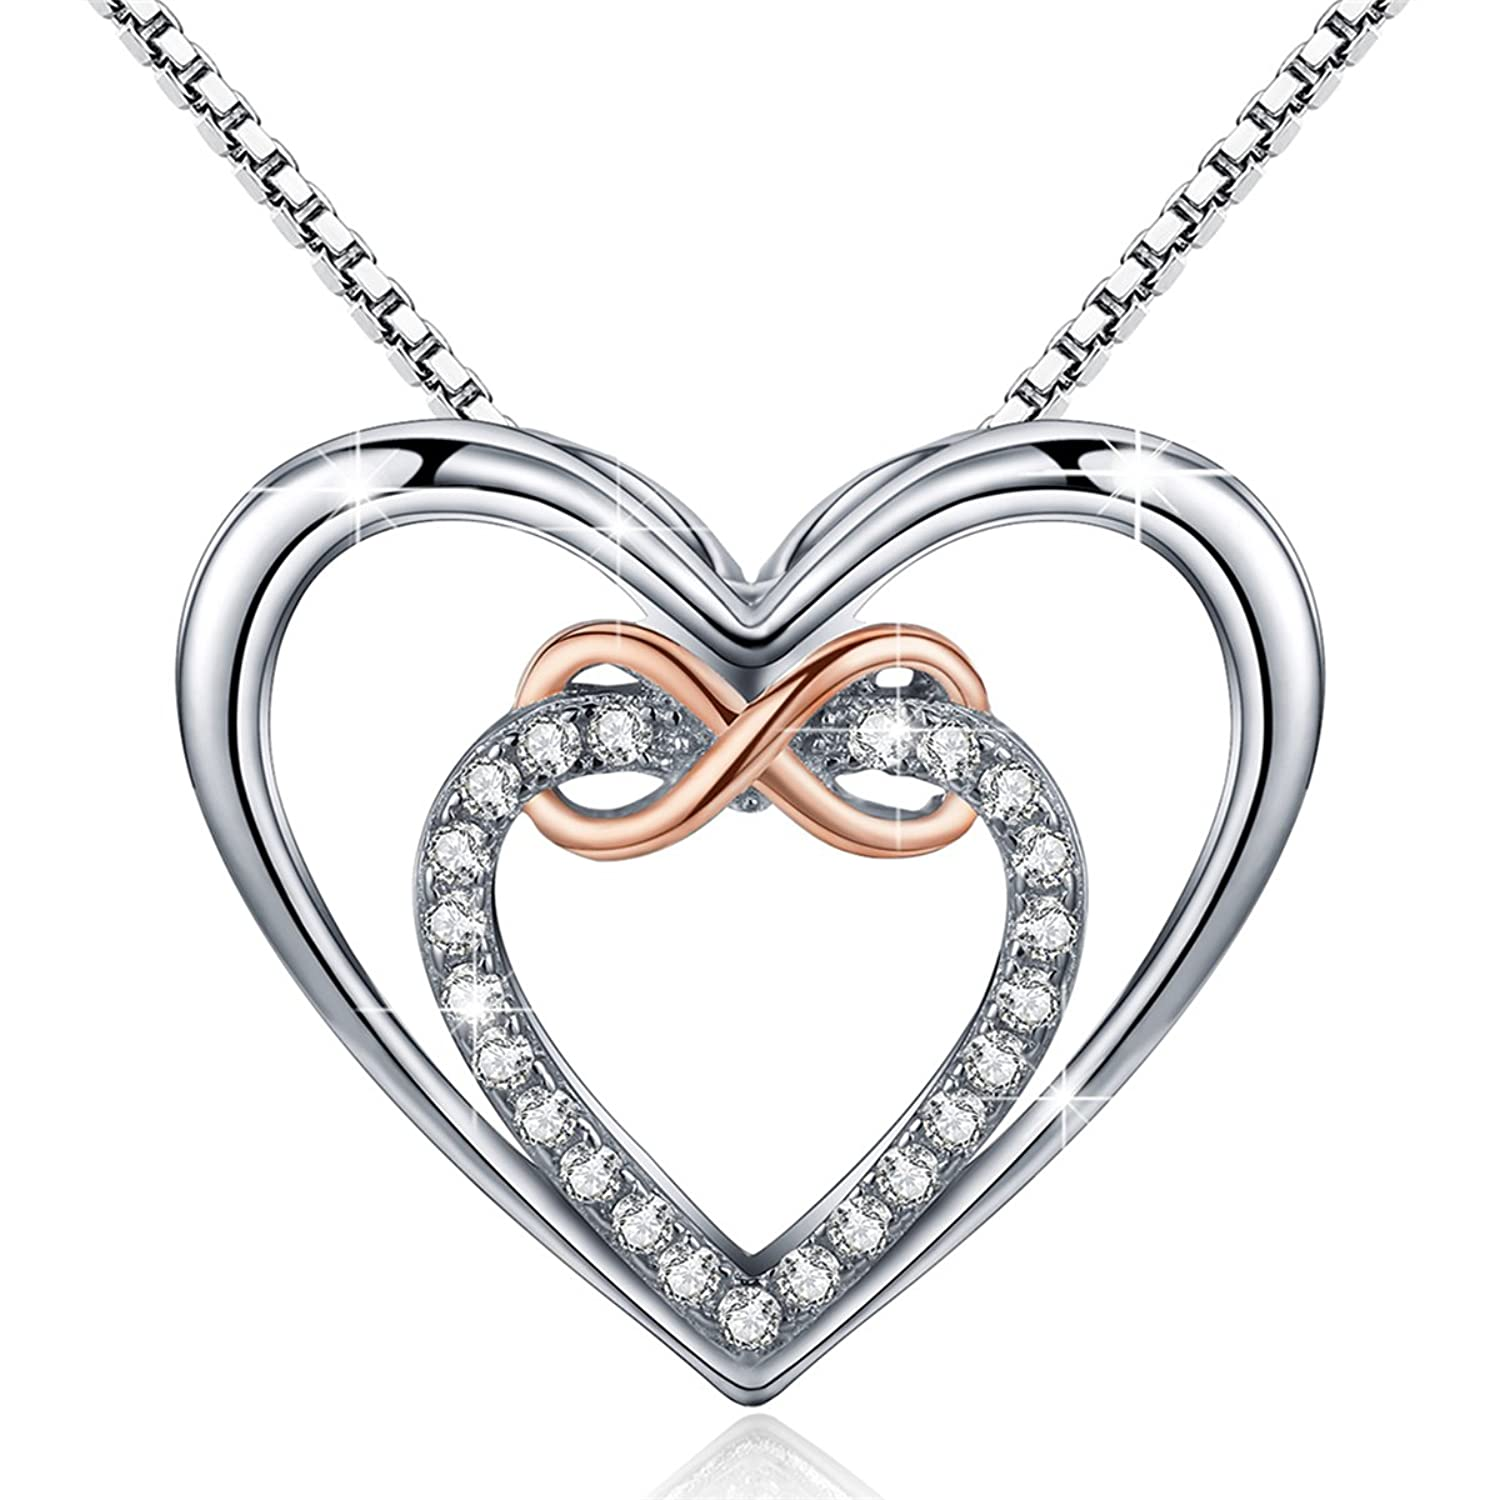 Bamoer Double Heart Necklace 925 Sterling Silver Pendant Infinity